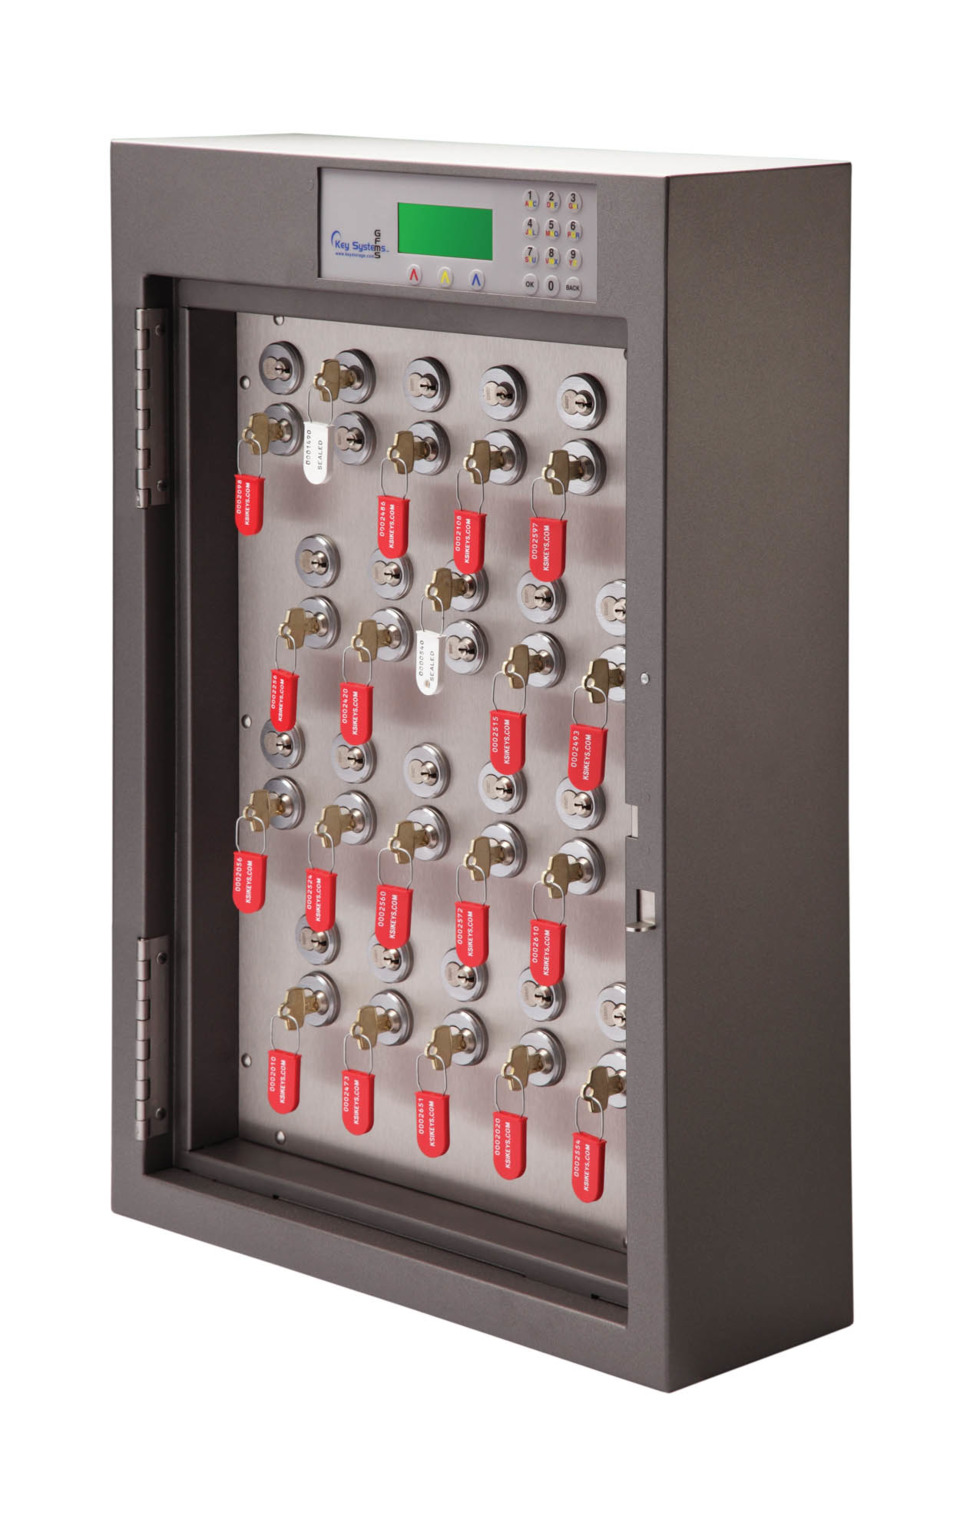 Institutional Application Of Key Cabinets